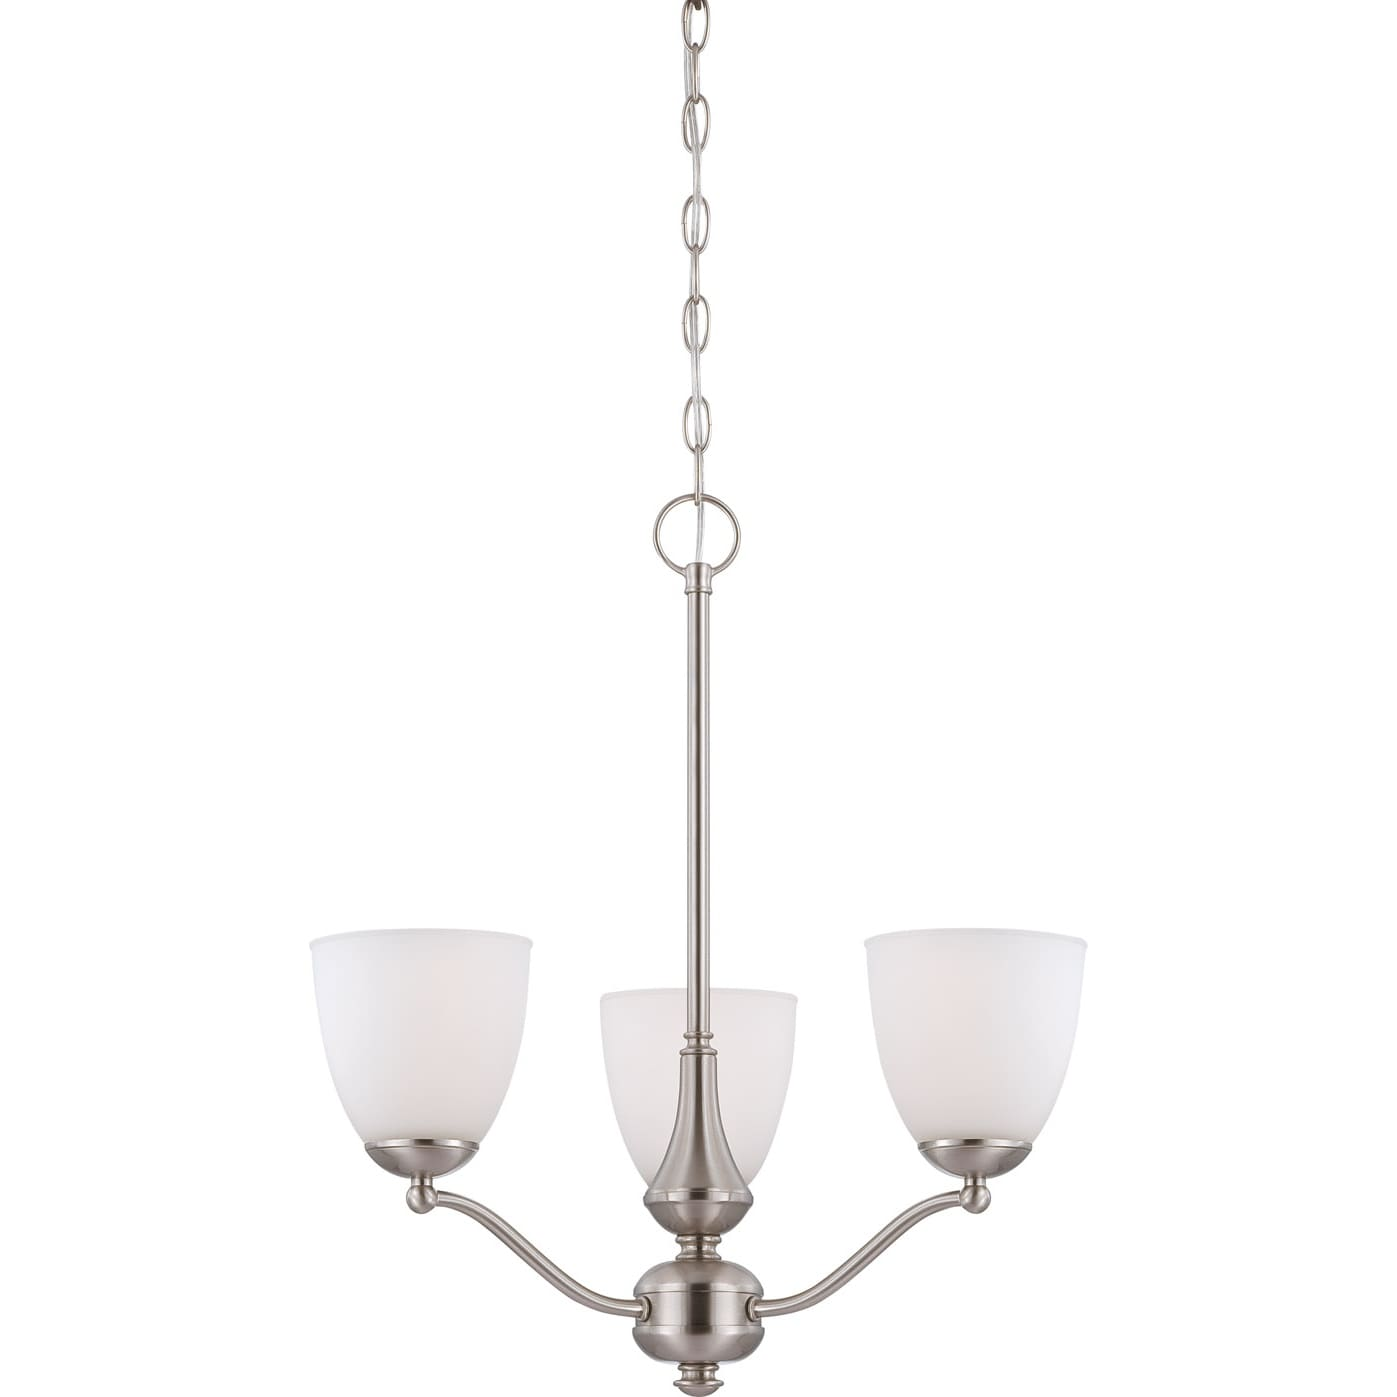 Nuvo 'Patton' Three-Light Brushed-Nickel Chandelier with Frosted-Glass Shades